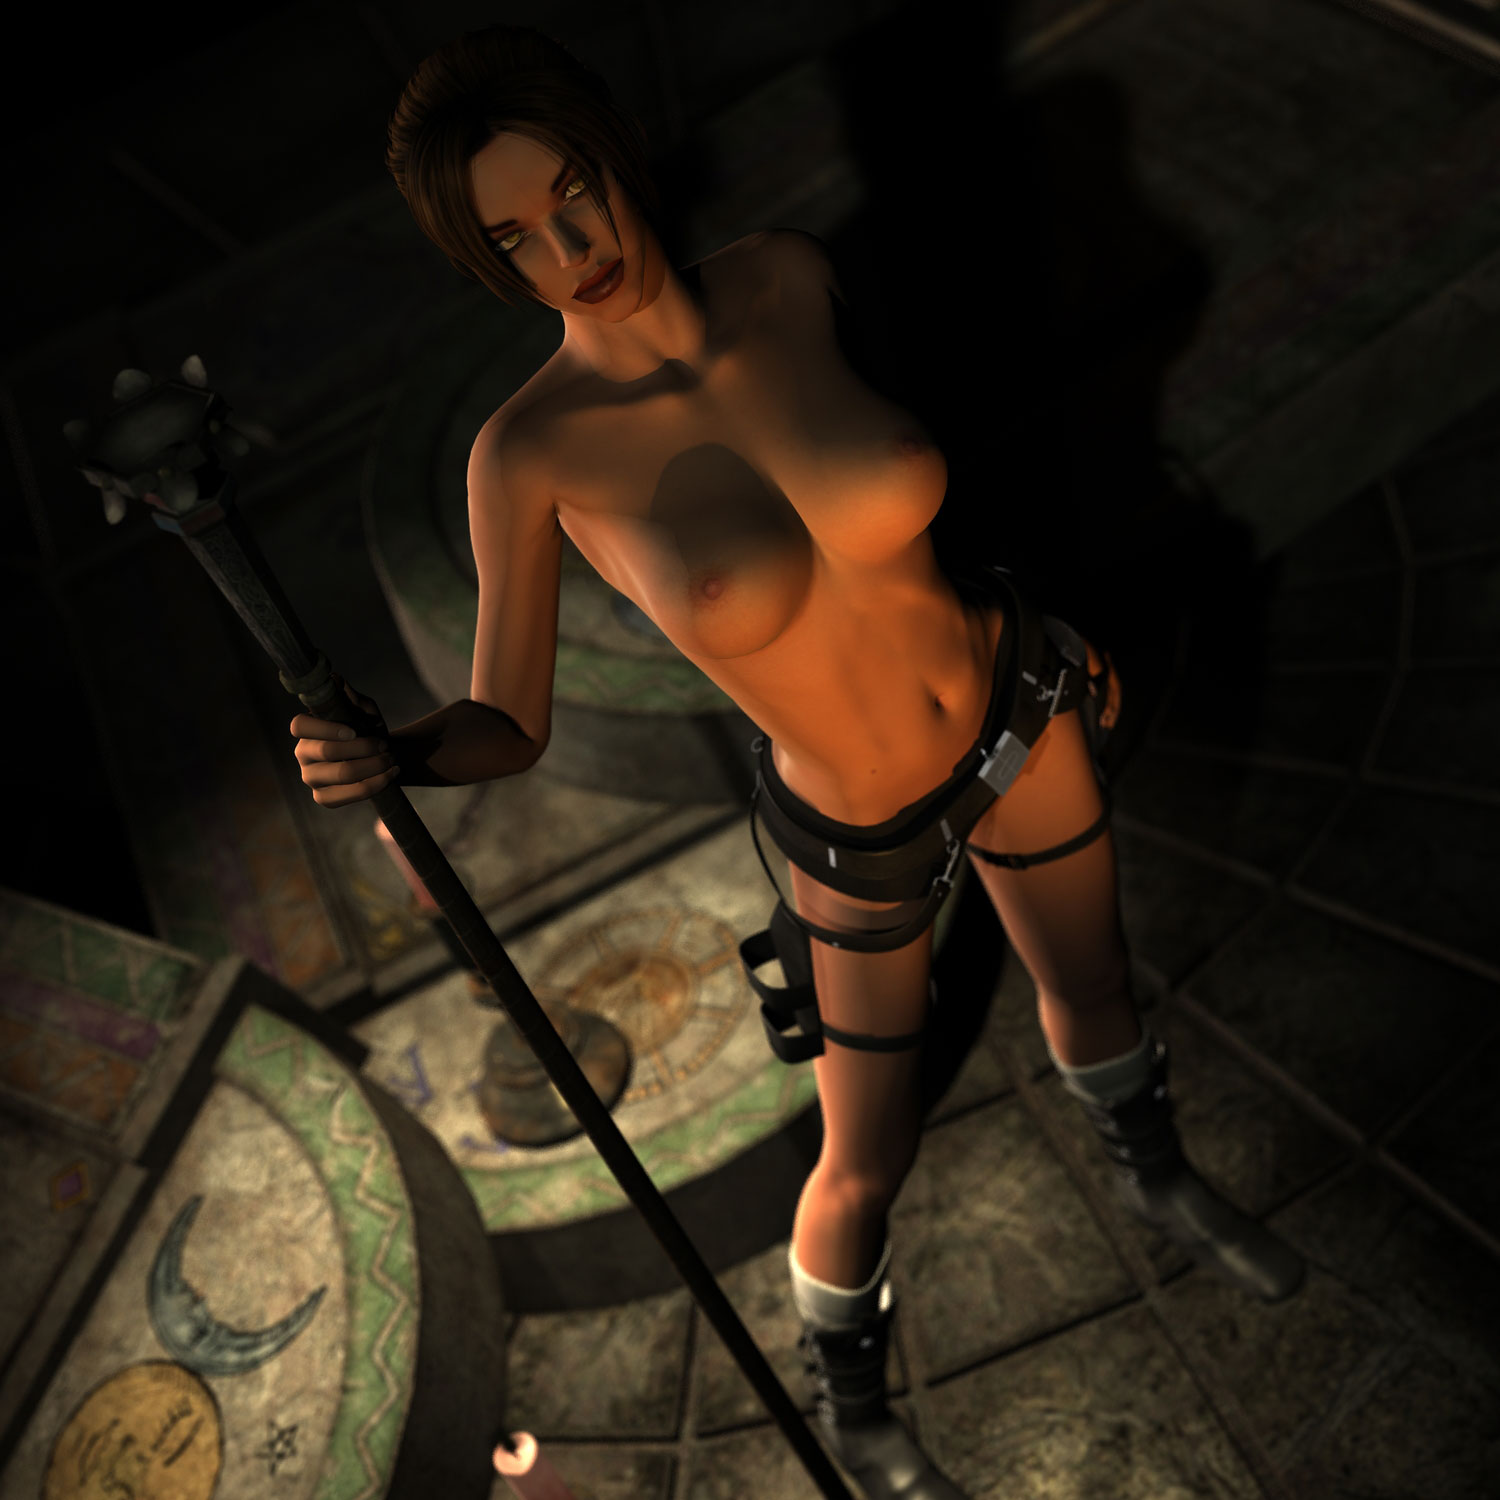 Sexy anime tomb raider naked adult videos